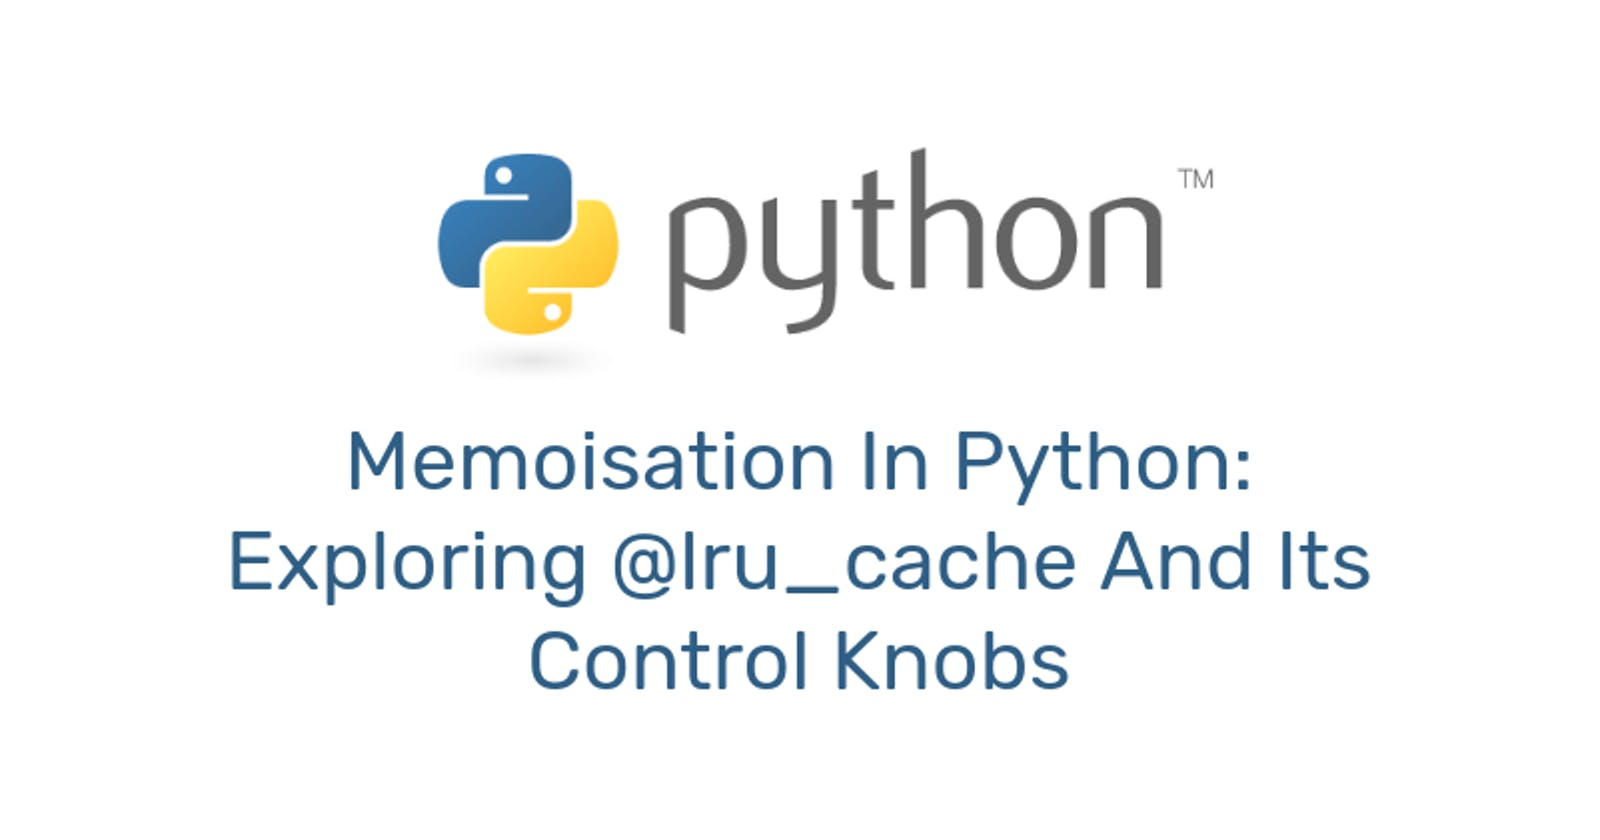 Memoisation In Python - Exploring @lru_cache And Its Control Knobs